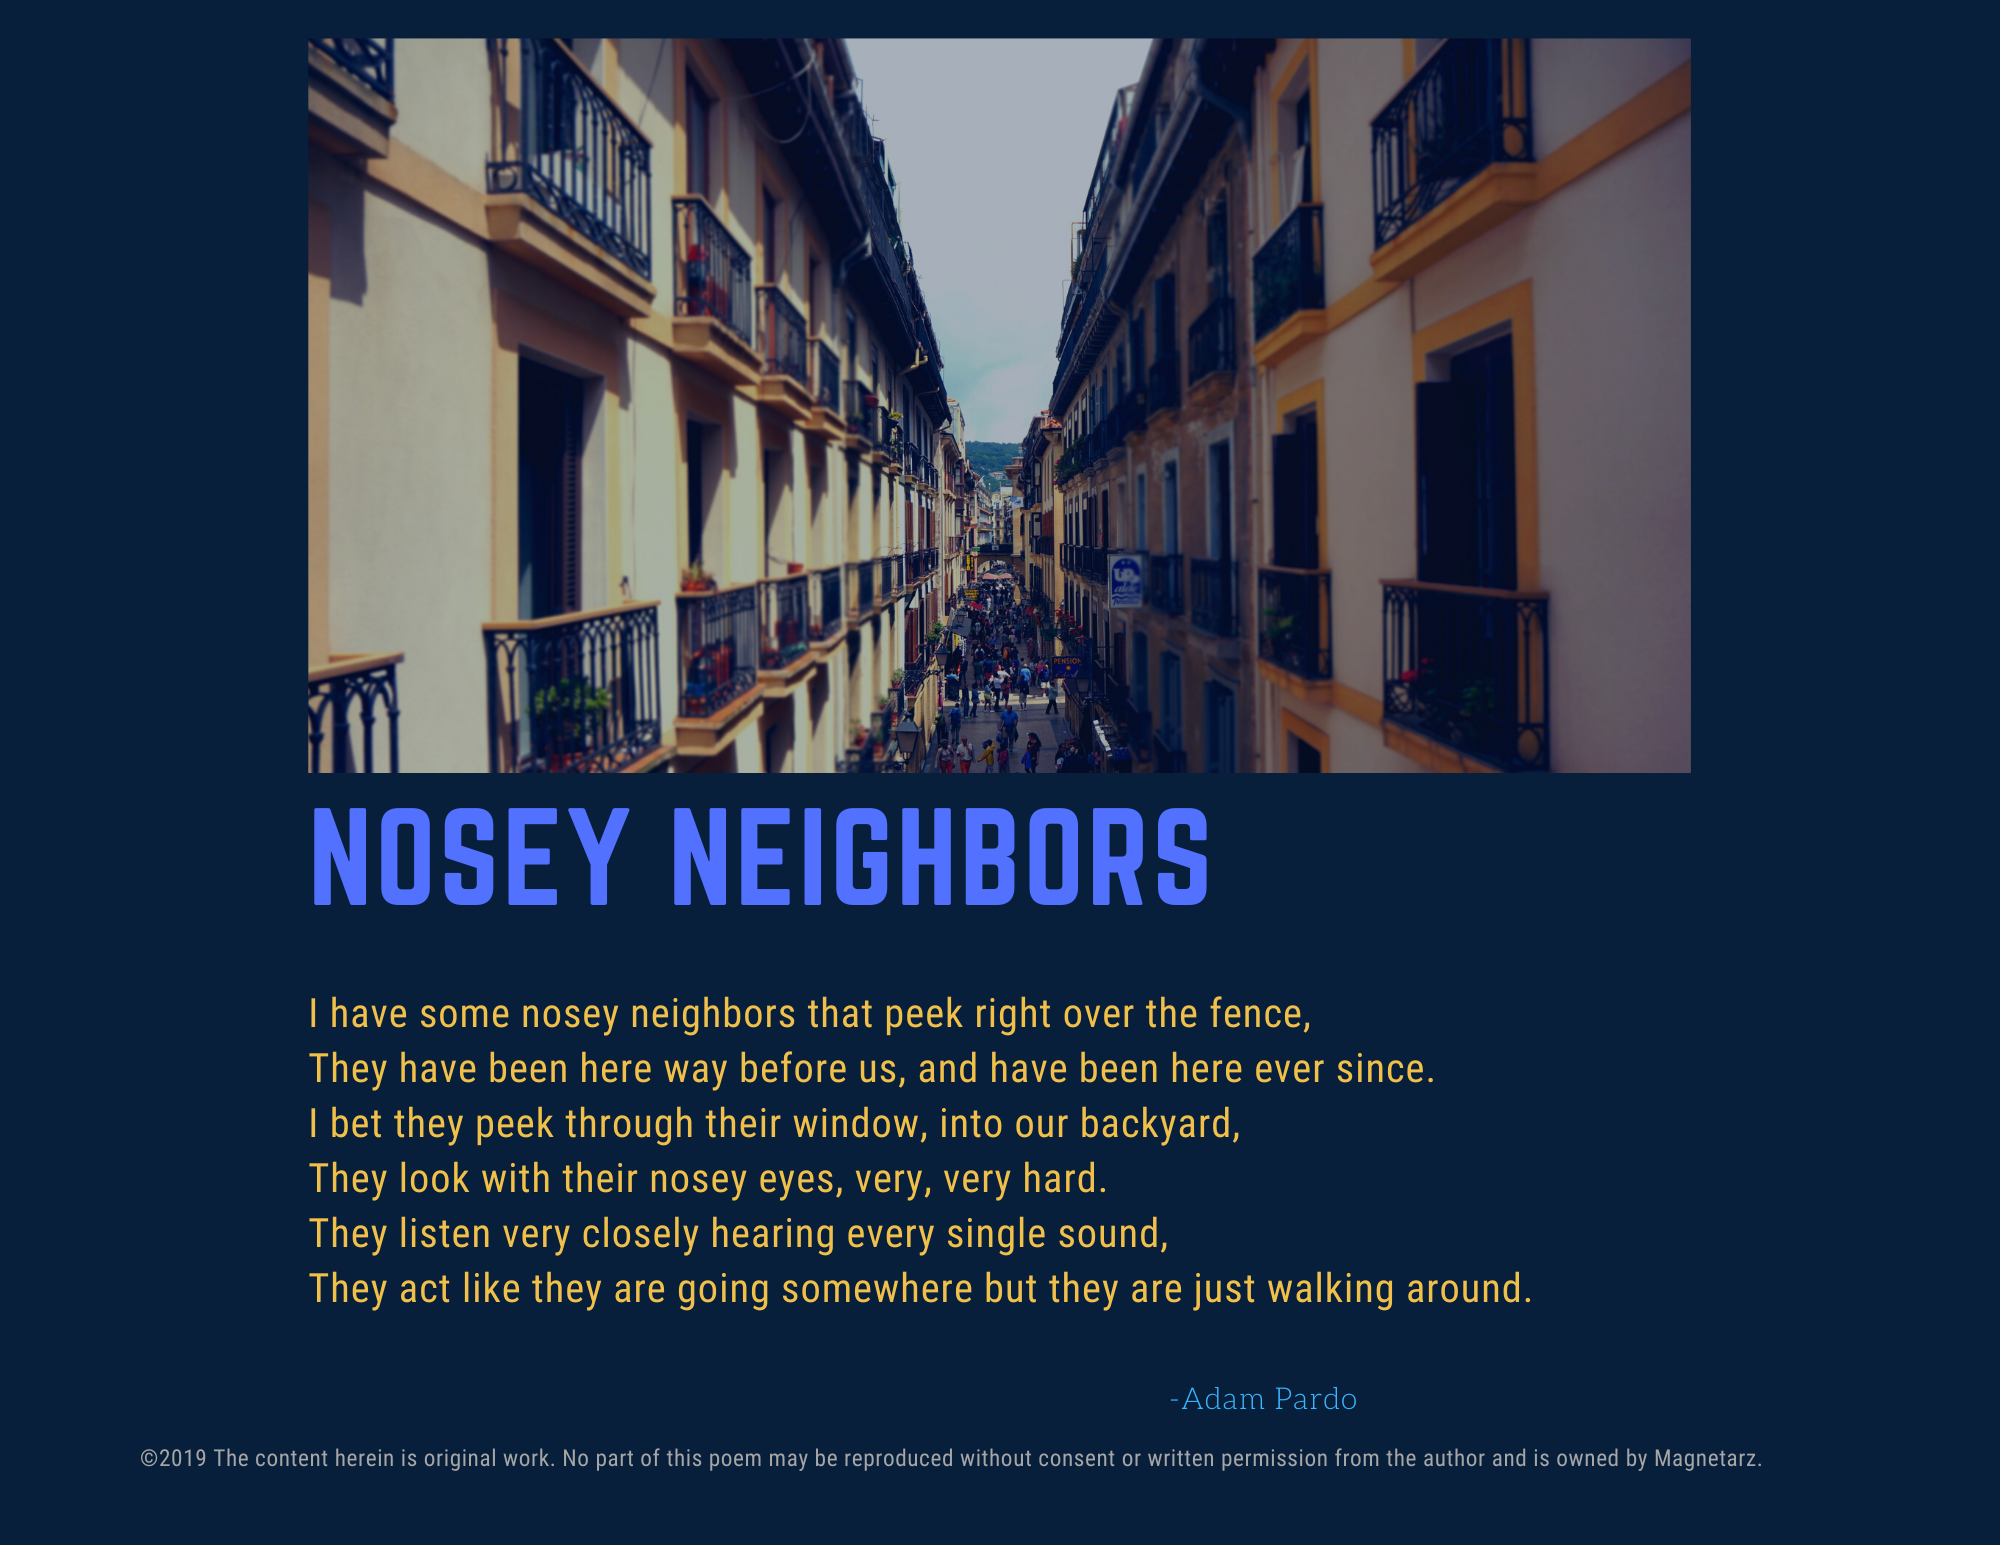 Nosey Neighbors